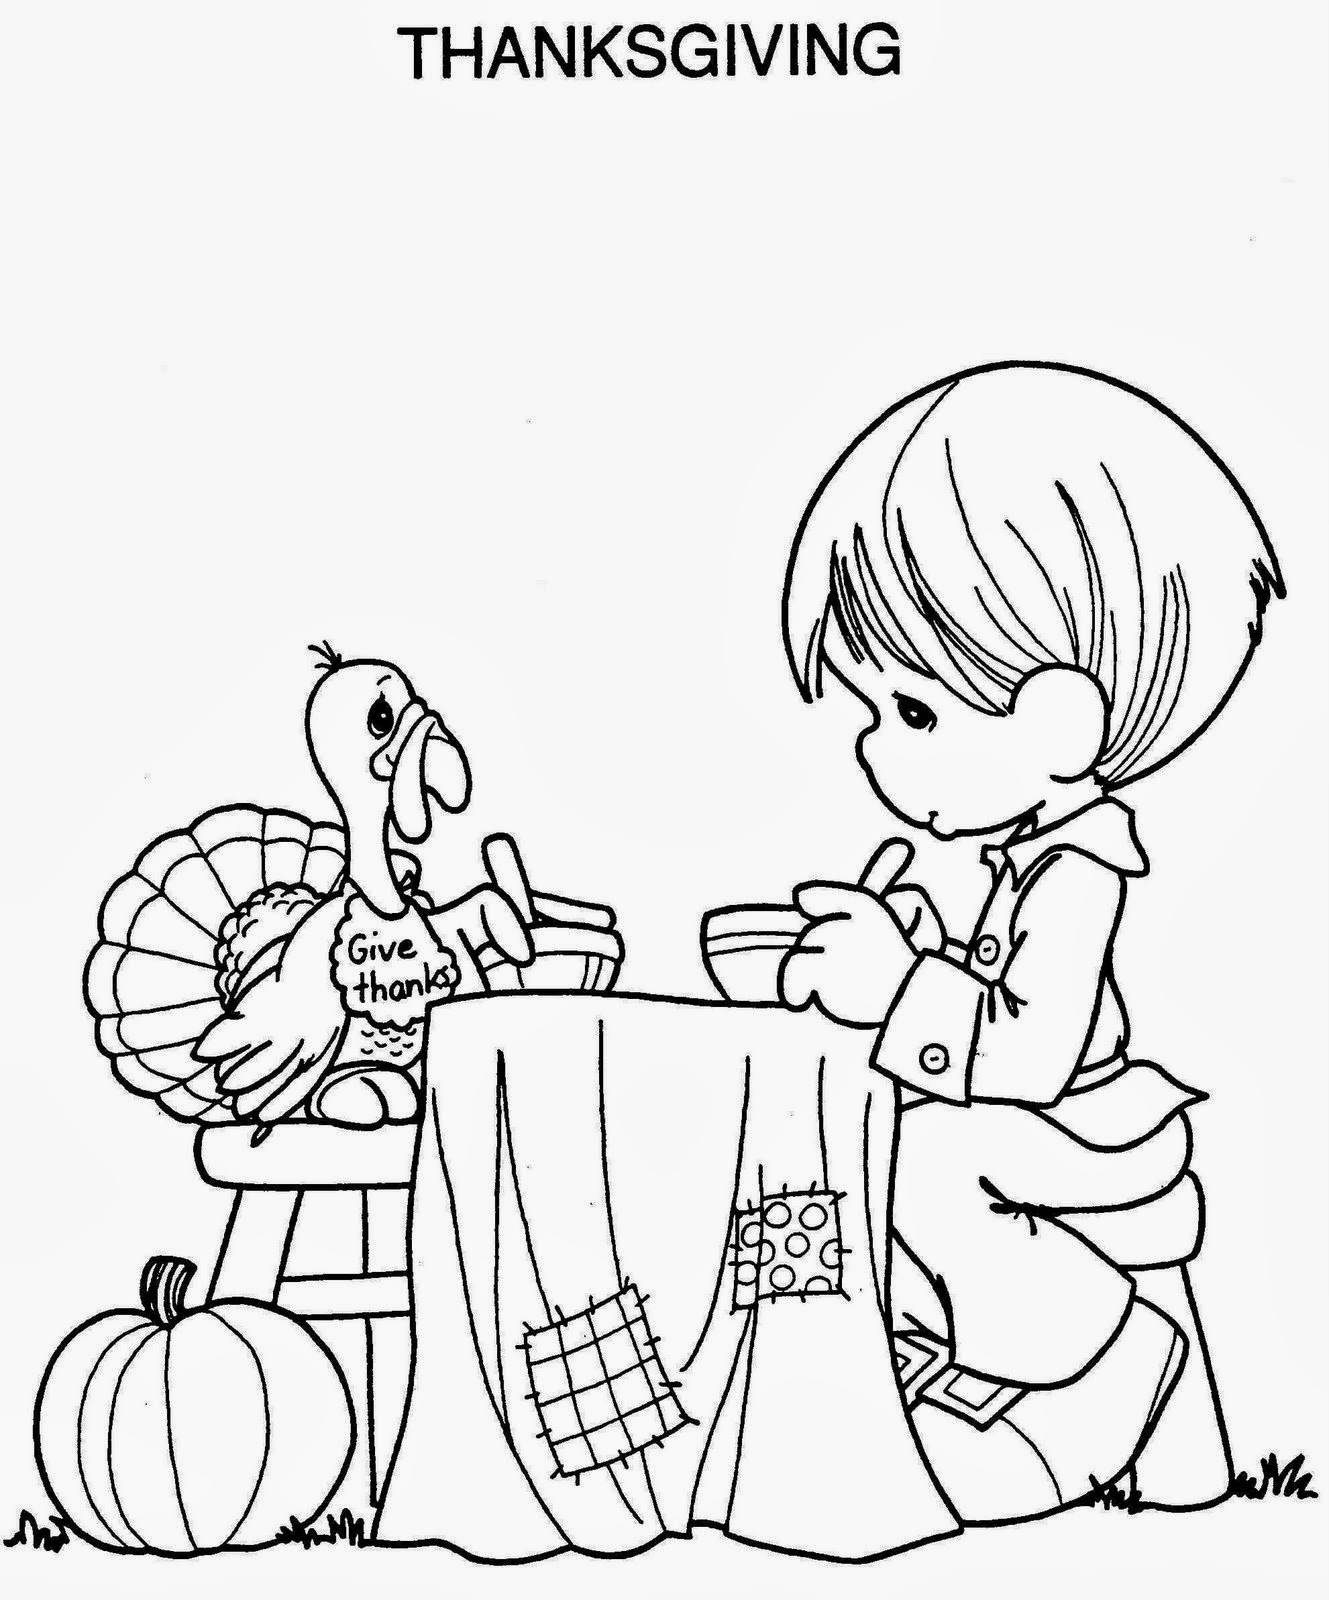 Thanksgiving day for coloring part 1 for Free thanksgiving coloring pages